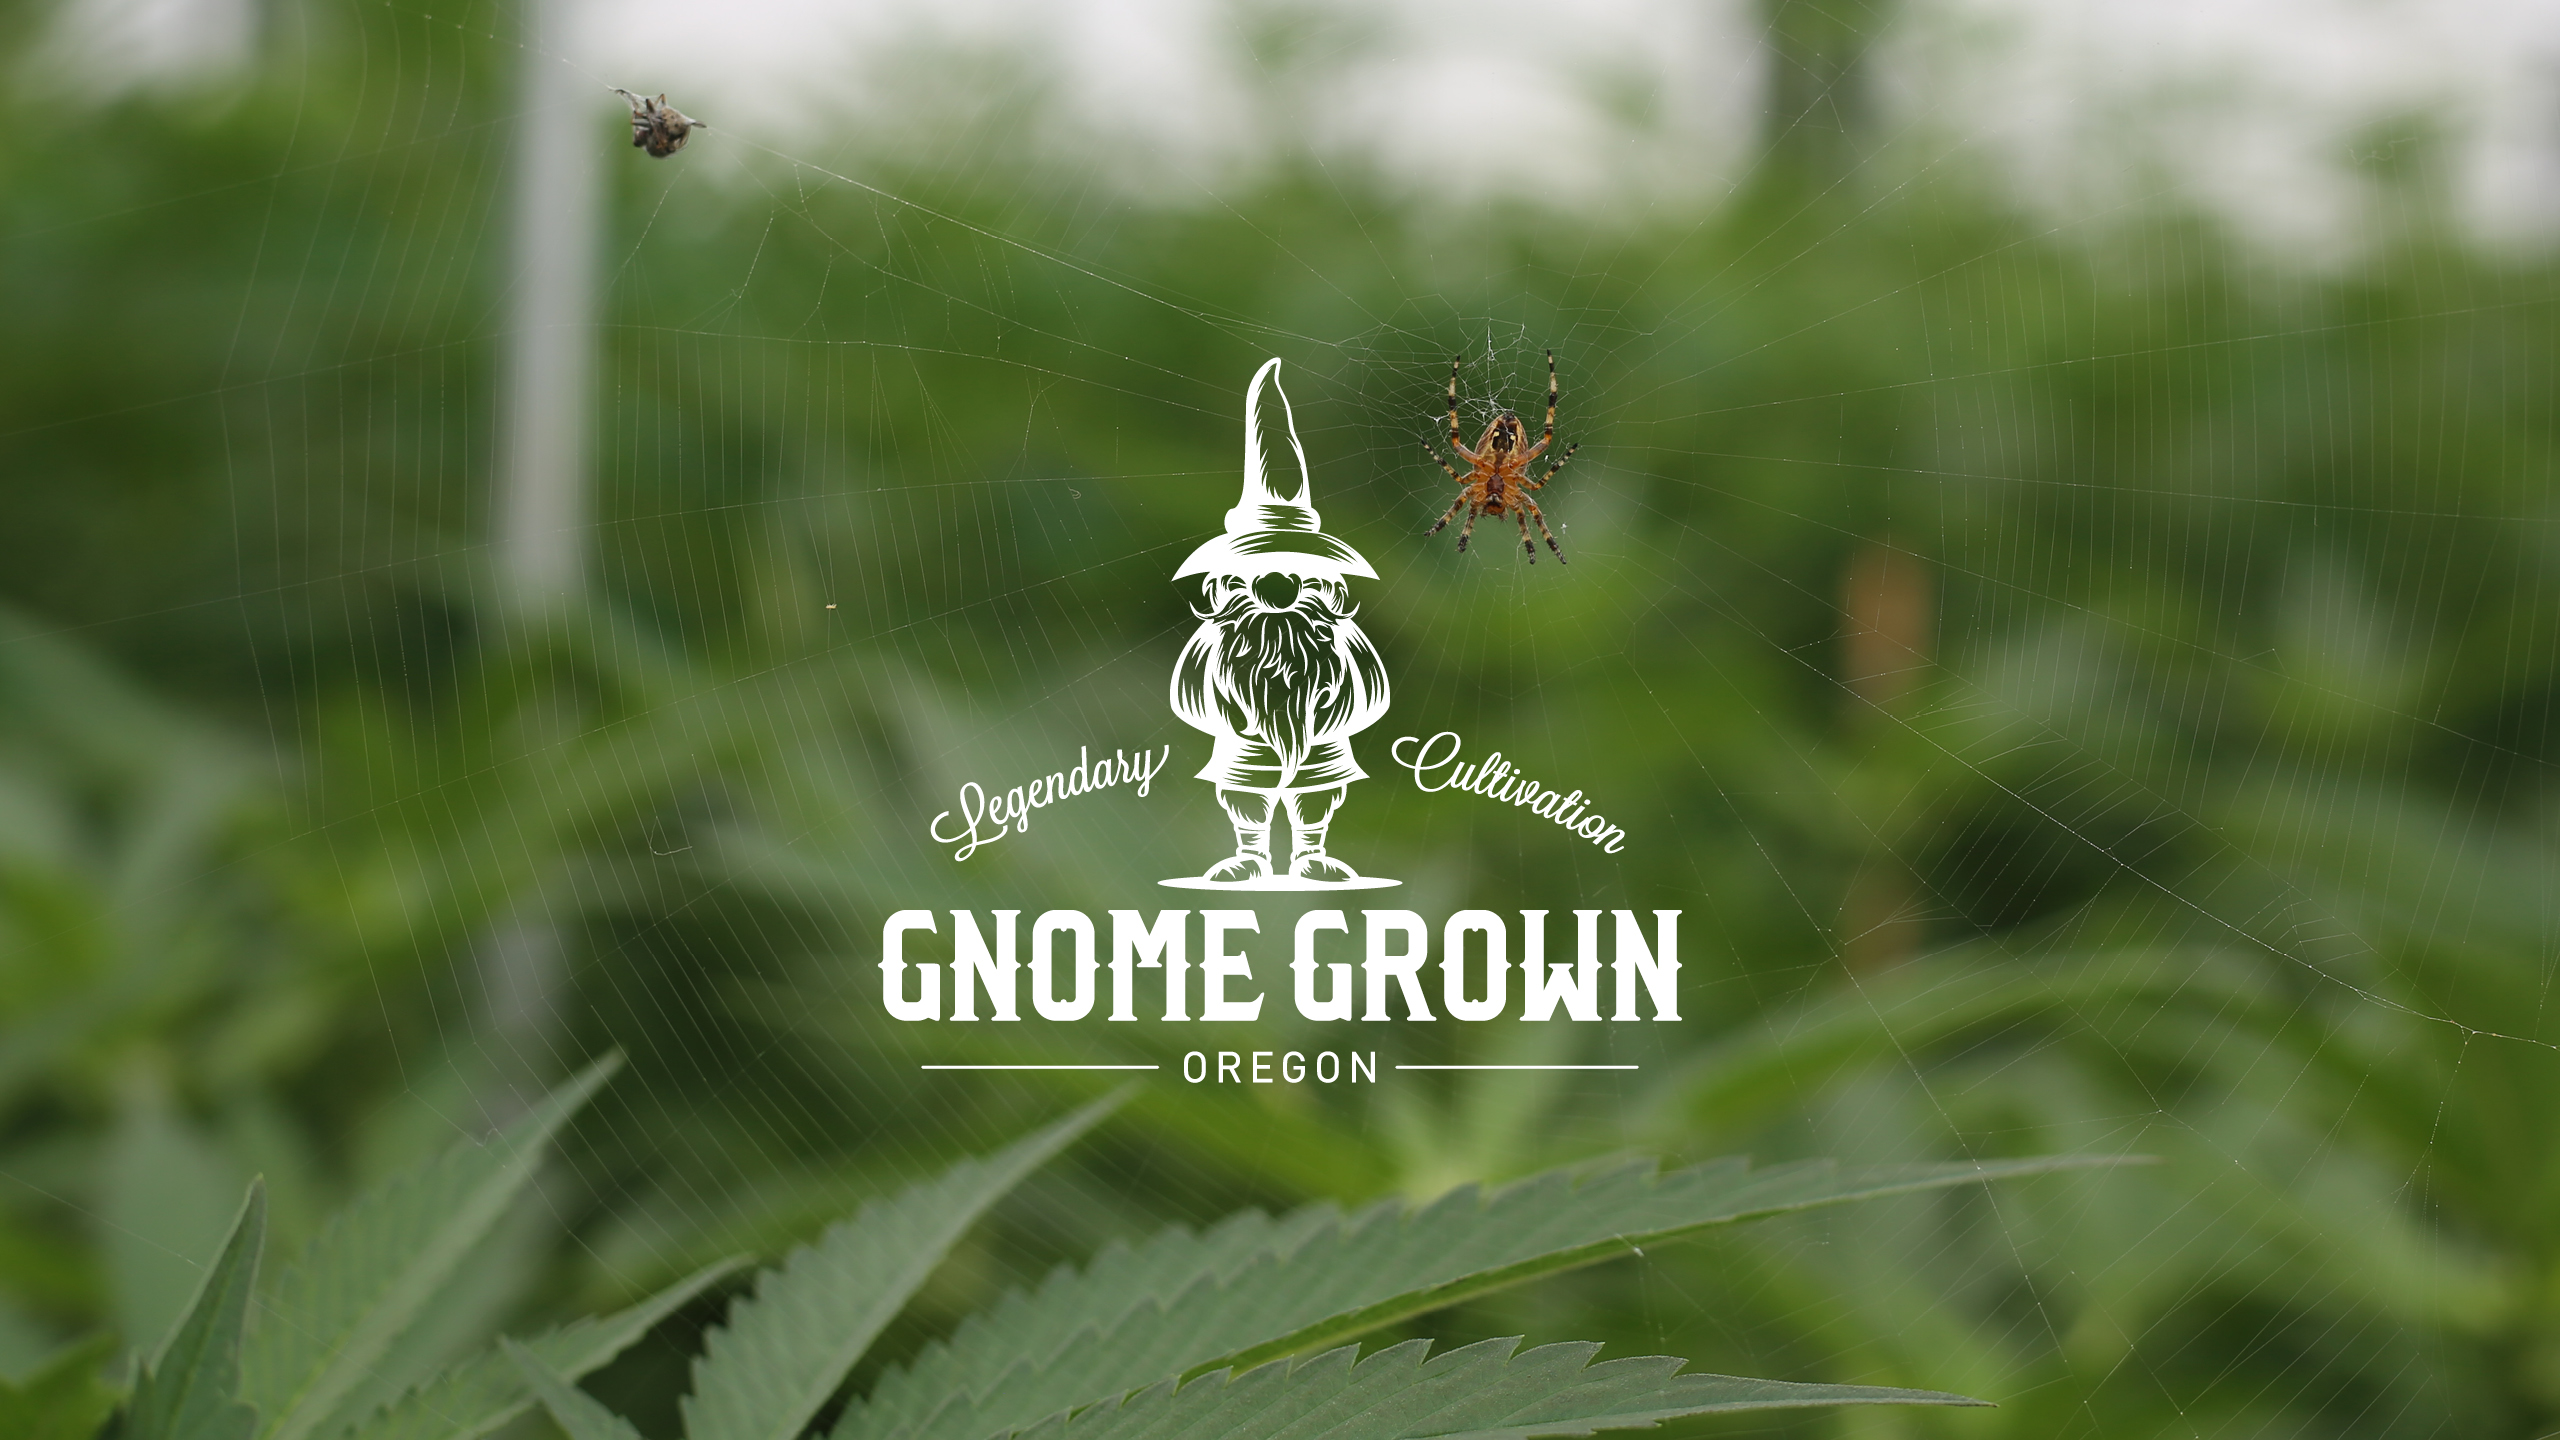 Gnome Grown Brand Identity Logo by High Road Design Studio